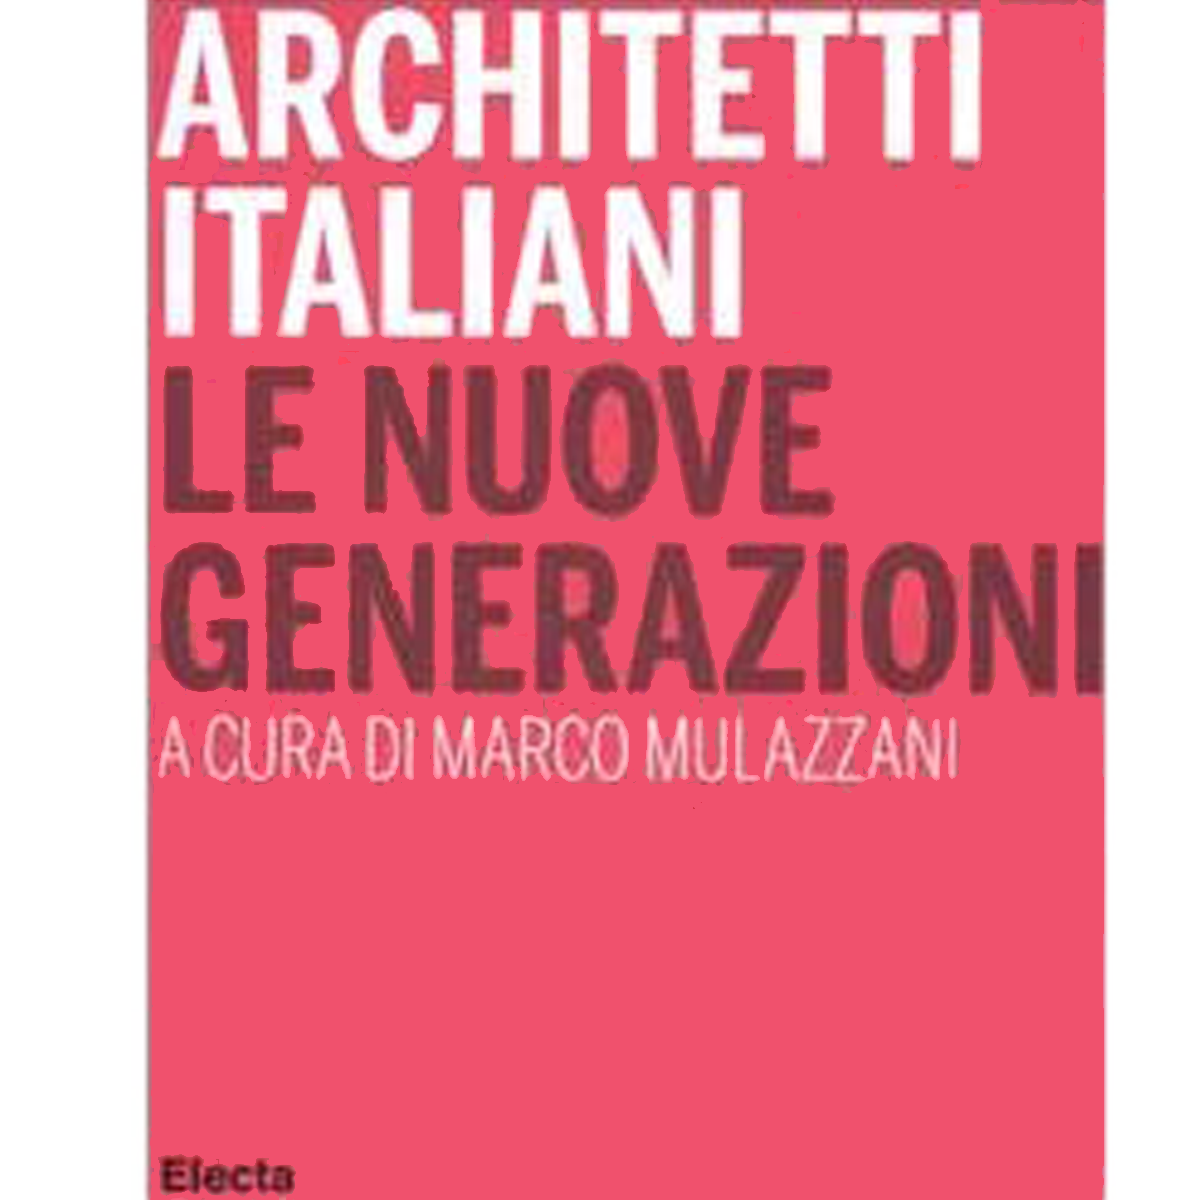 Architetti italiani. Le nuove generazioni